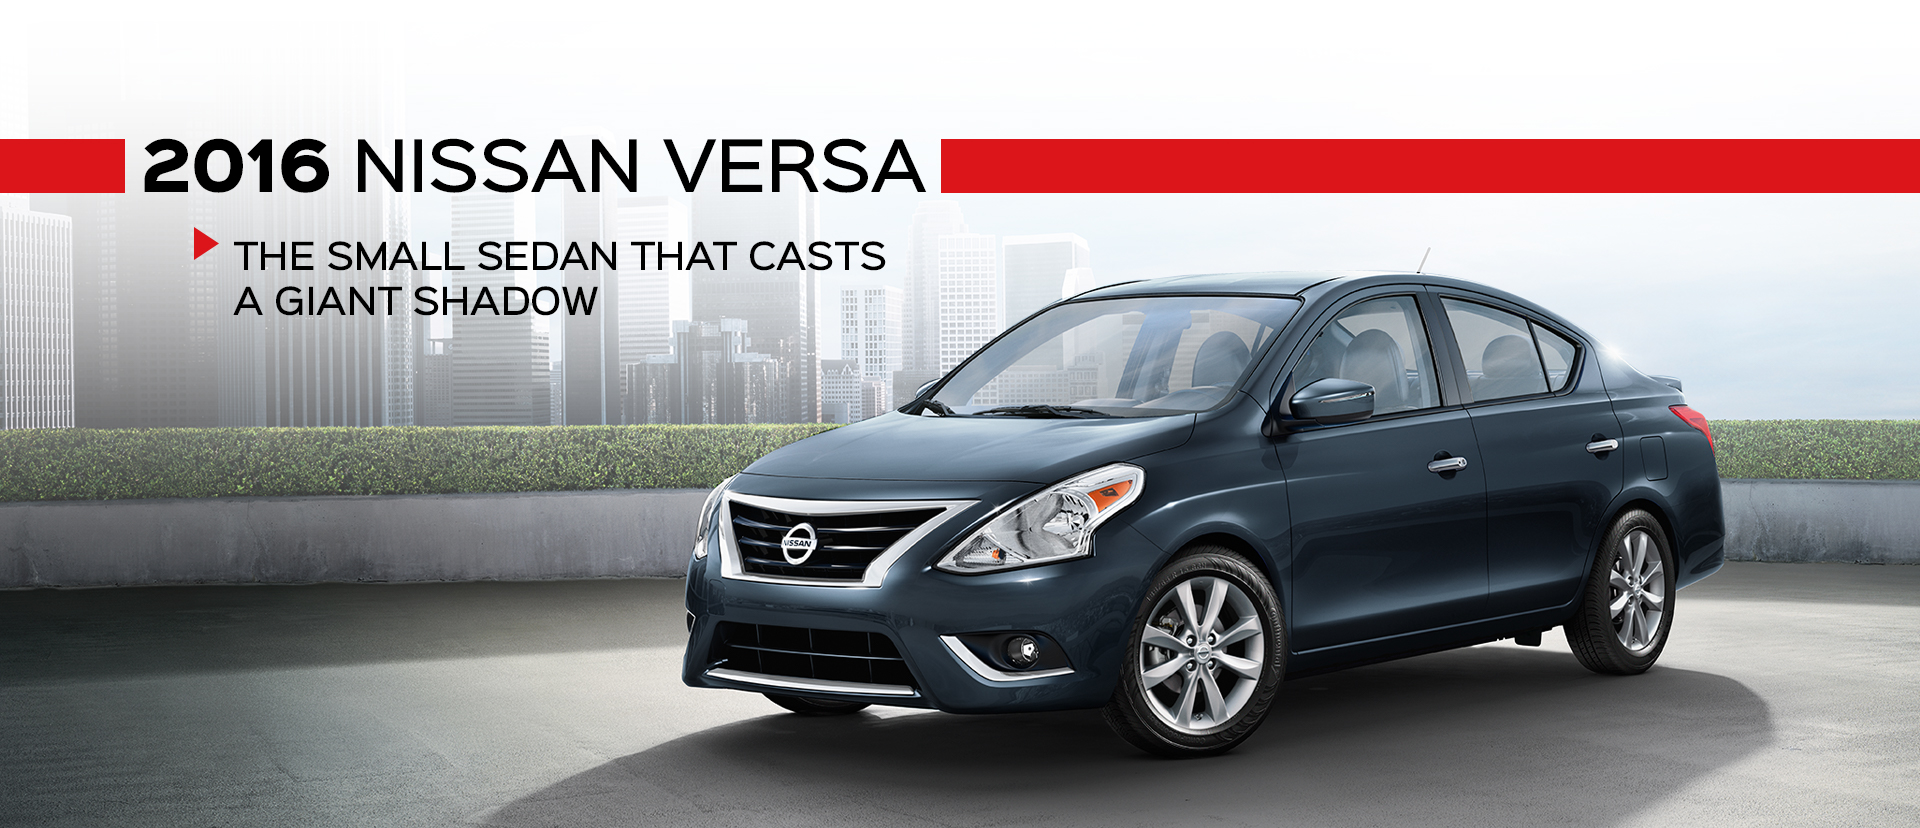 Versa Canned